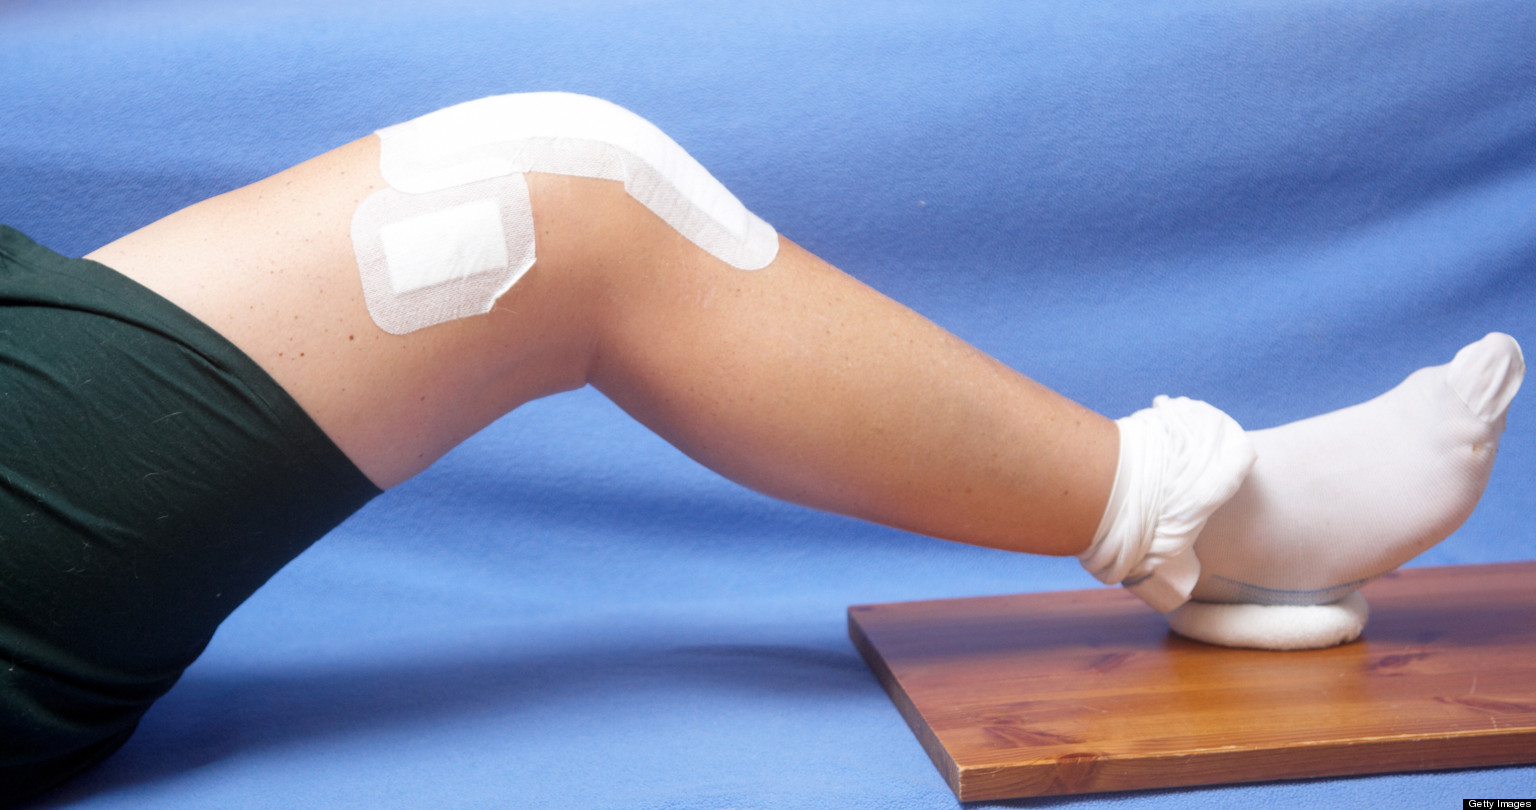 Best doctor for knee replacement Mumbai